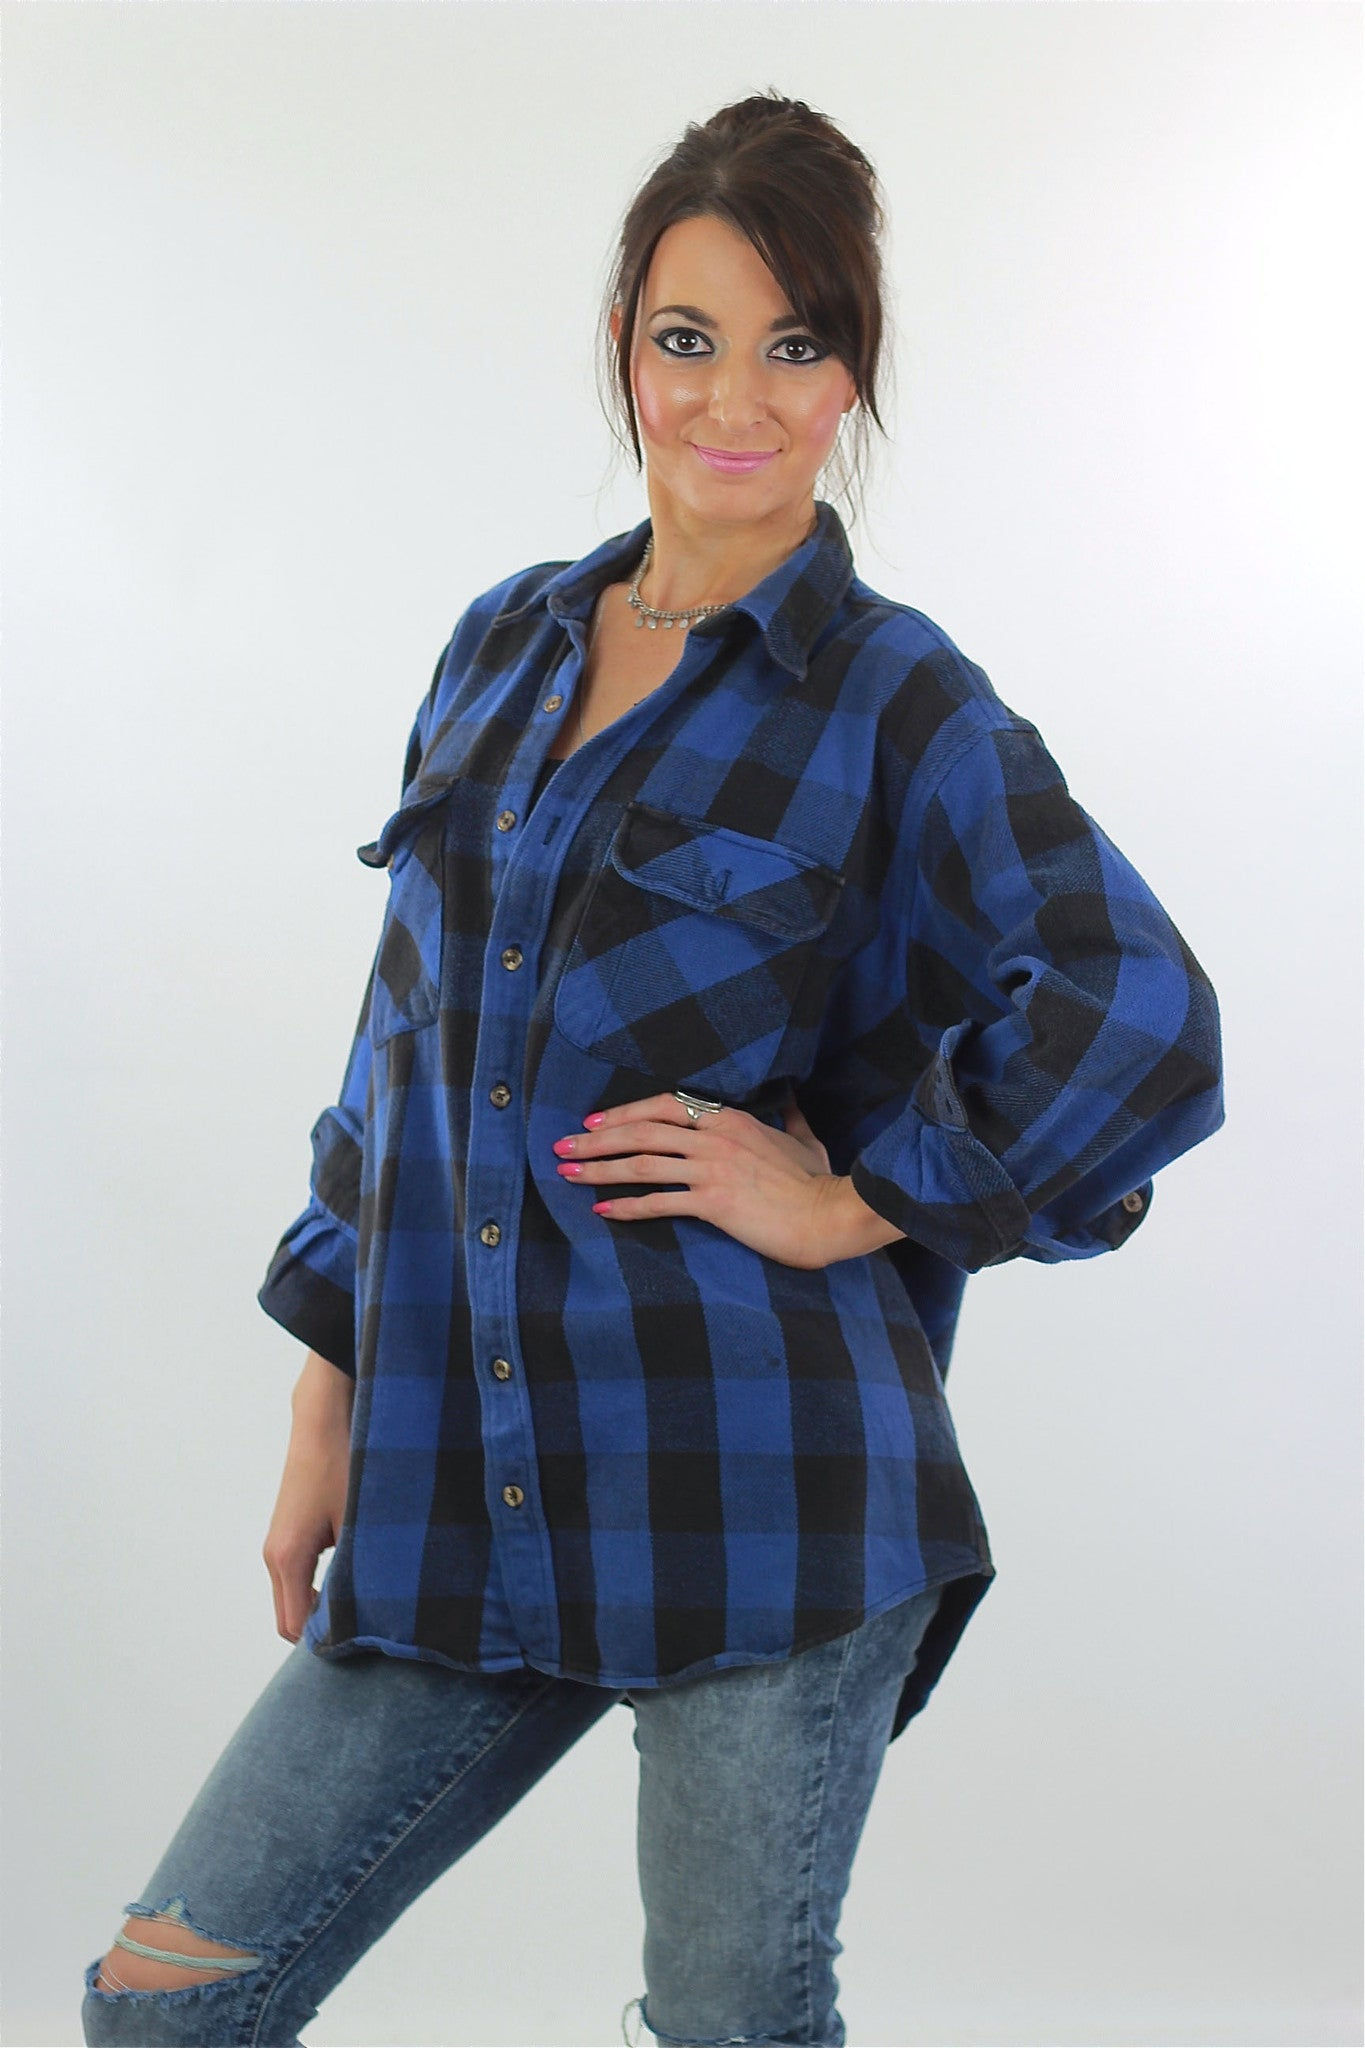 a06d1660a 90s grunge Blue flannel shirt Lumberjack black blue checkered ...